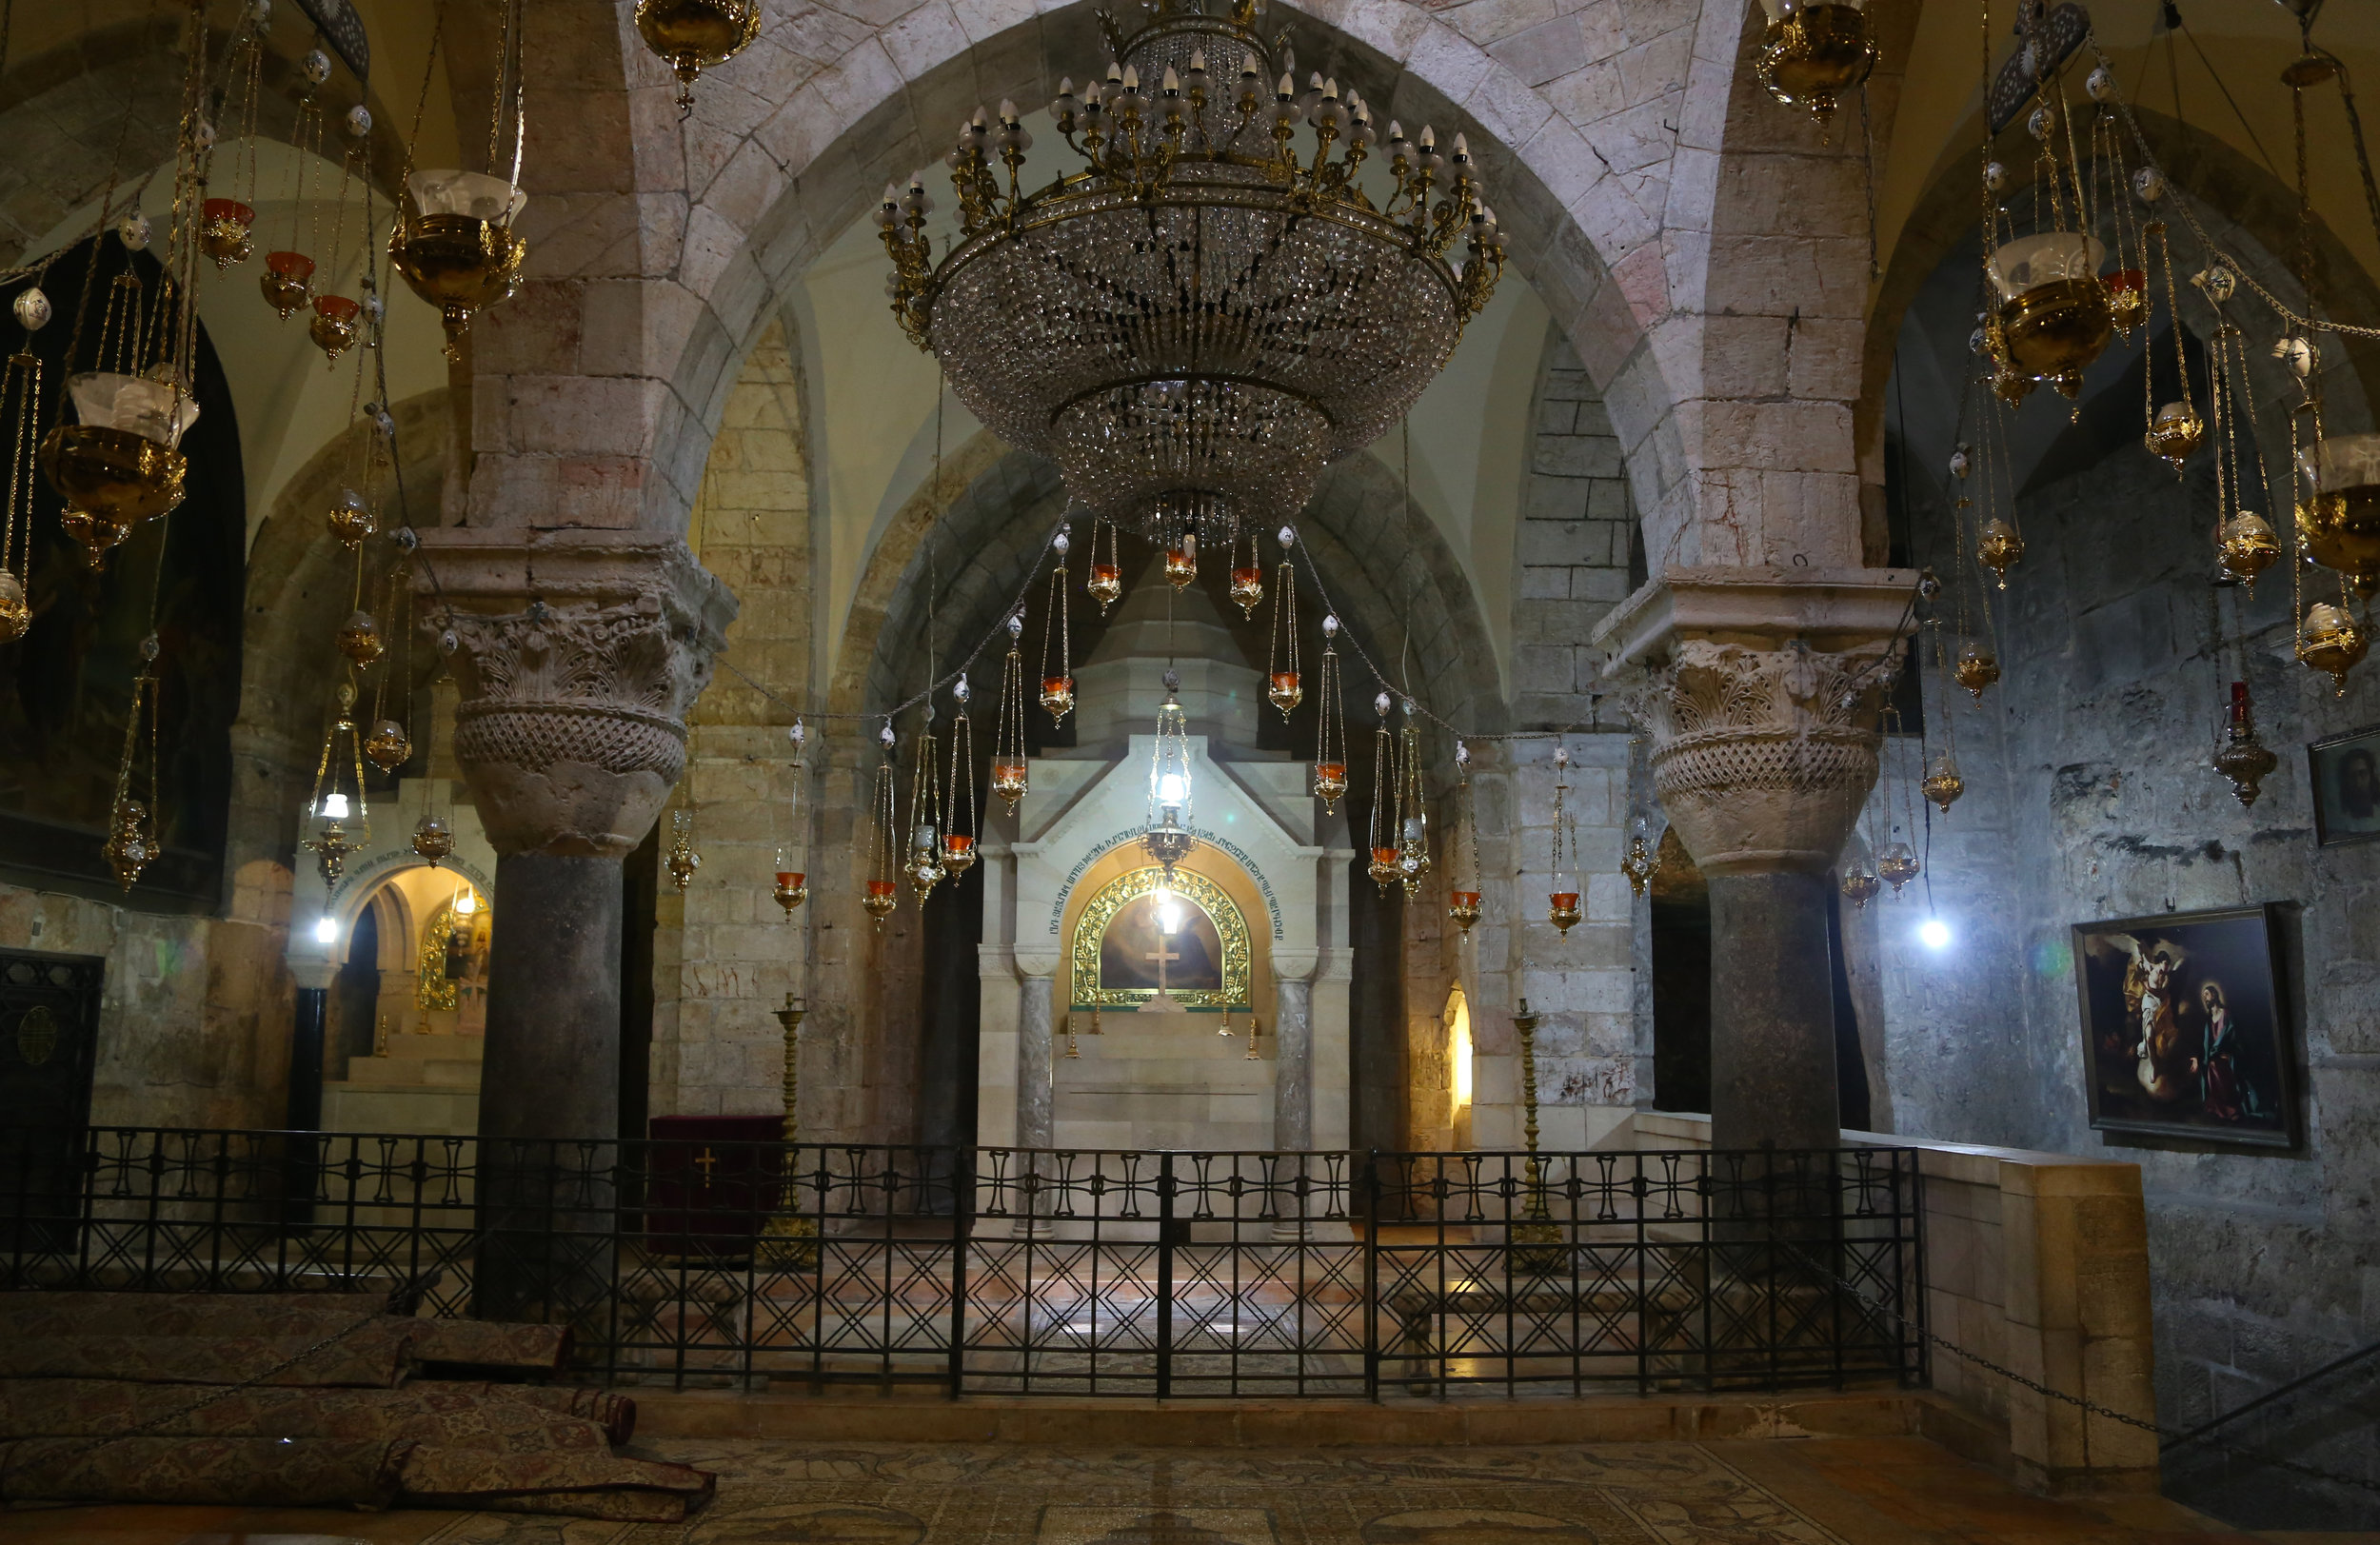 A quite moment inside the Chapel of Saint Helena at the Church of the Holy Sepulchre, built upon the site identified as the location of the crucifixion of Jesus.